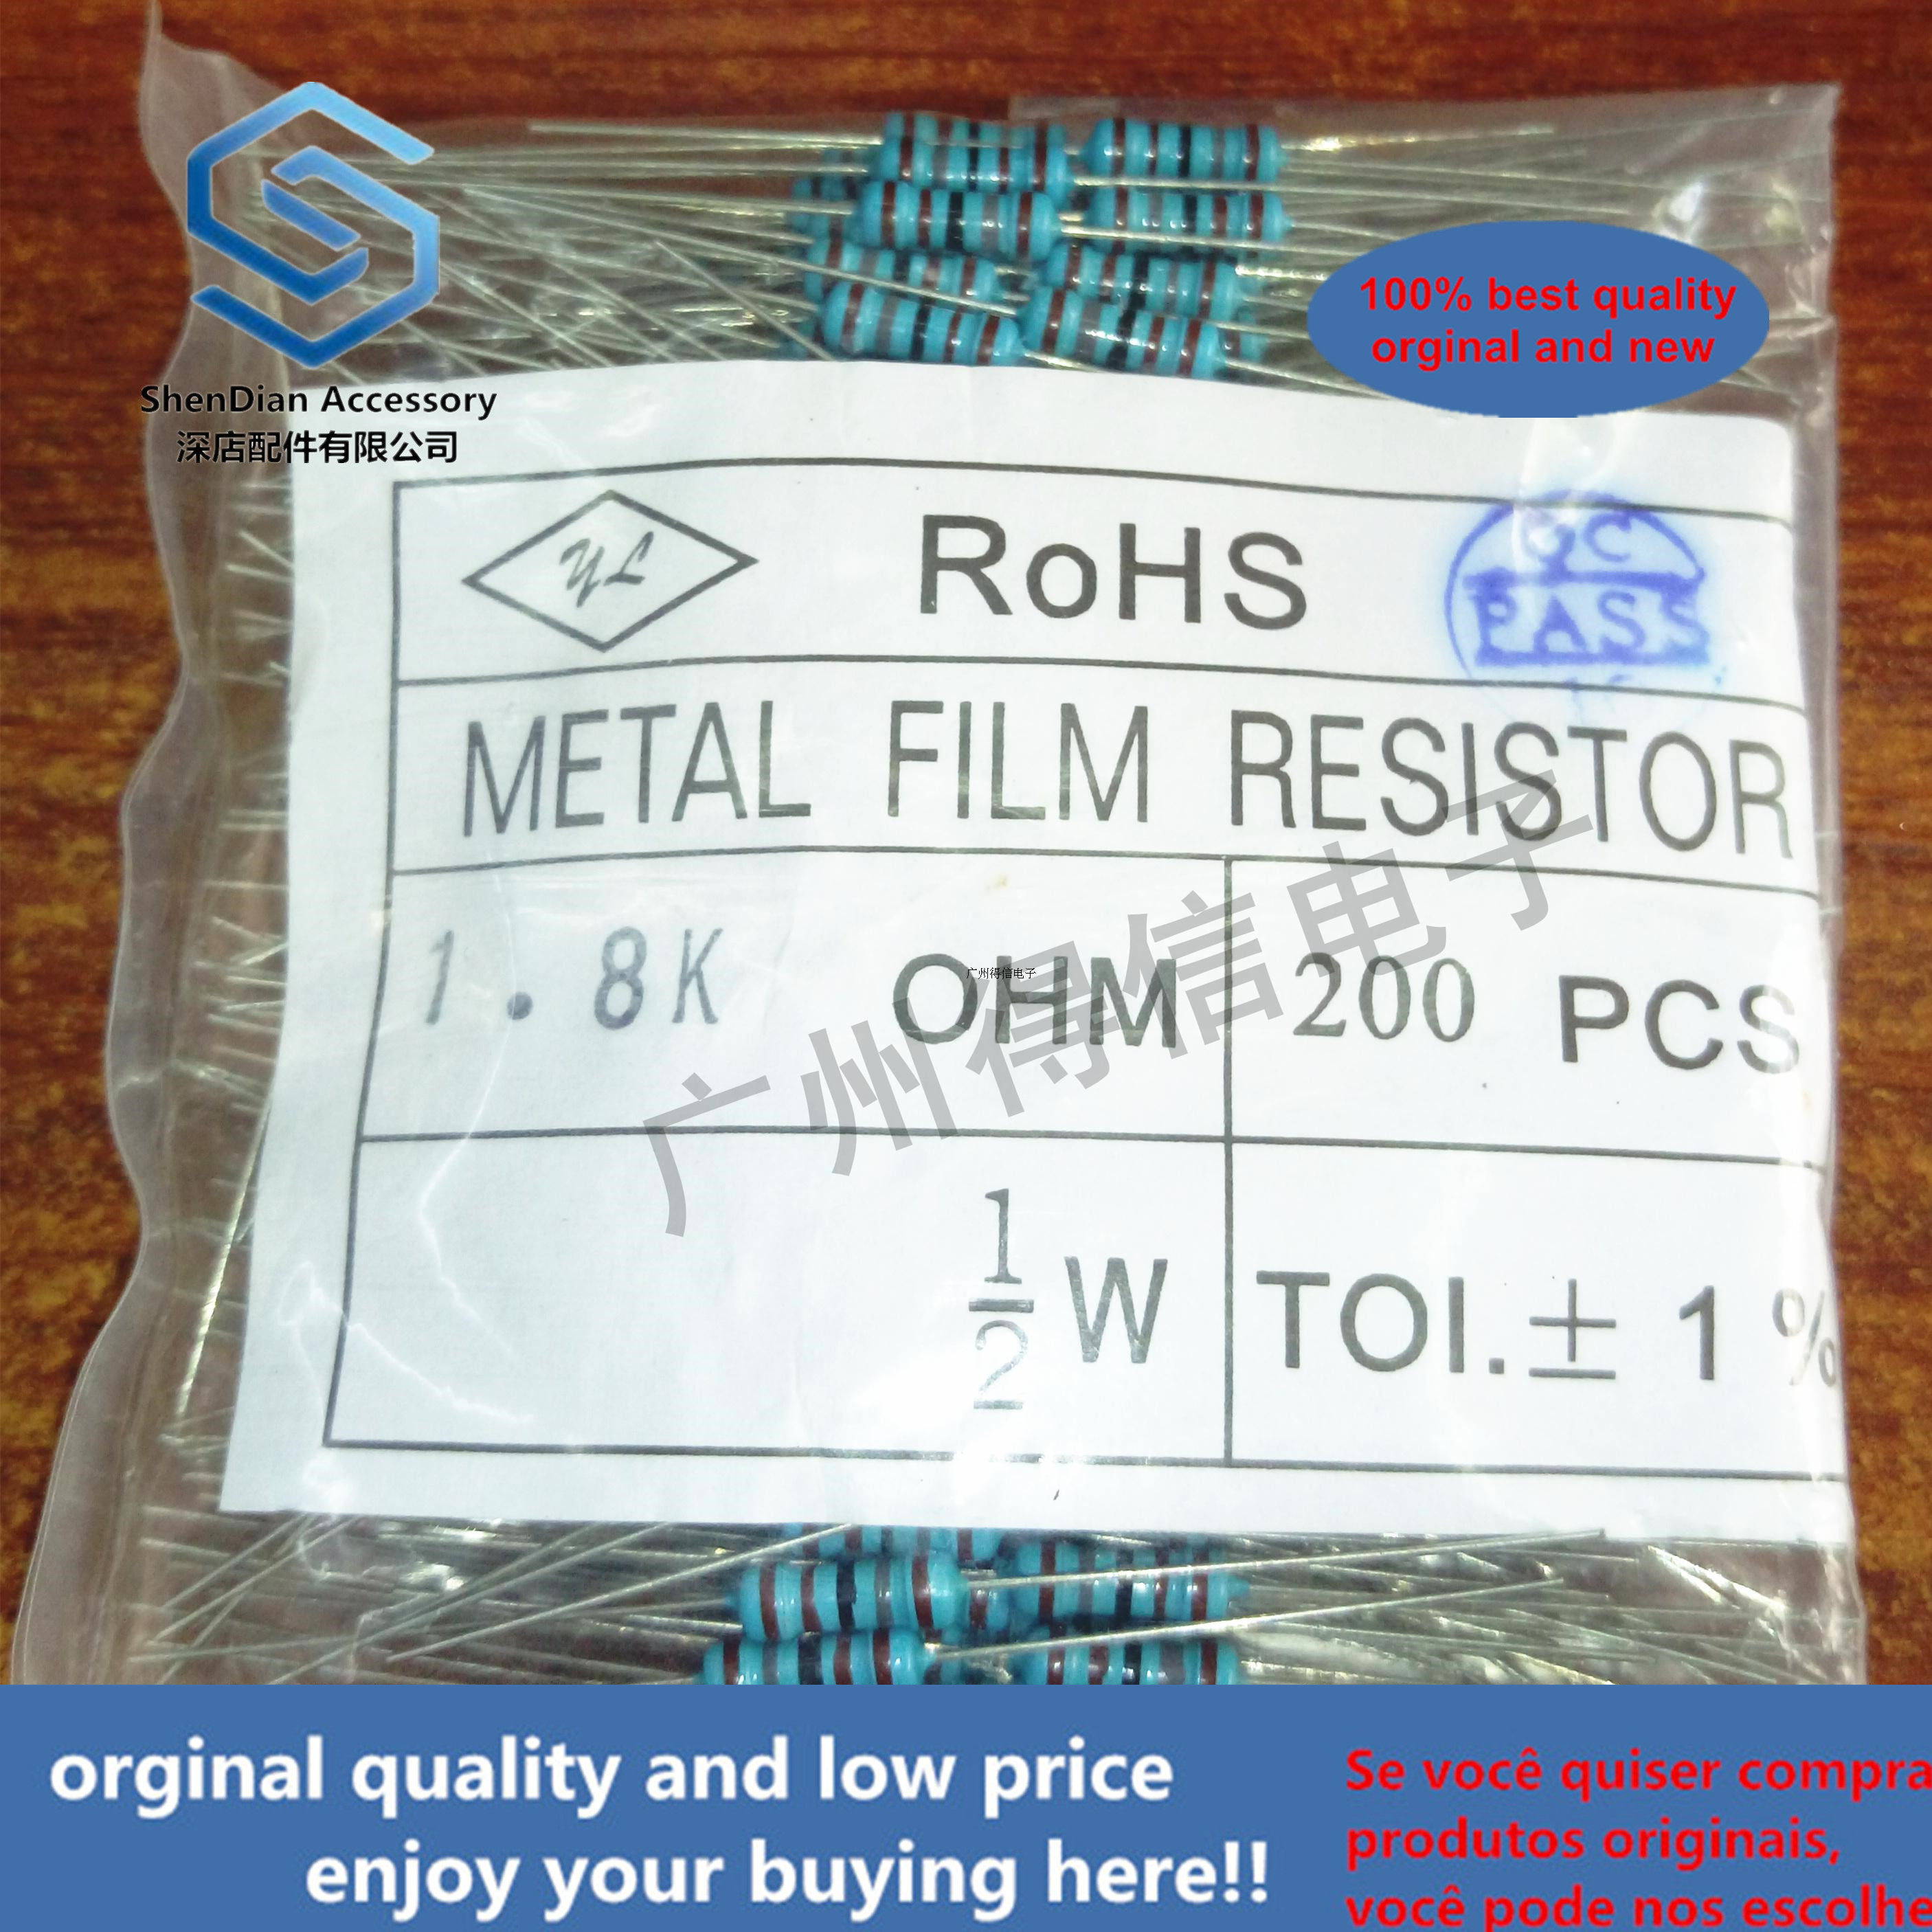 200pcs 1 / 2W 1.2R 1.2 Euro 1% Brand New Metal Film Iron Feet Resistor Bag 200 Pcs Per Pack